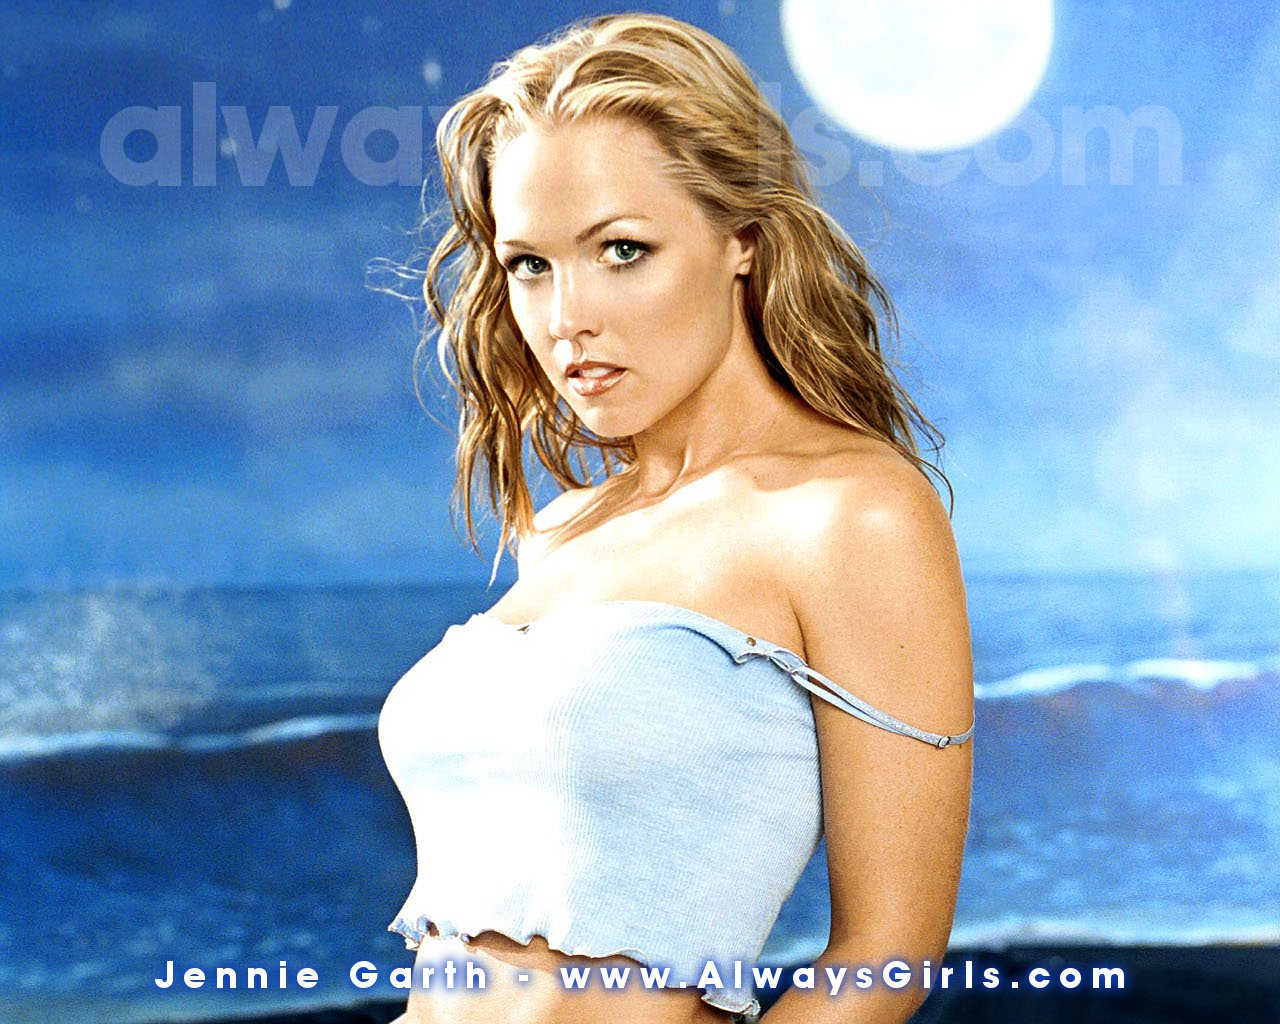 Jennie Garth Jennie Garth Birthday Party 2oqi1fxxewfl Jpg Pictures to 1280x1024